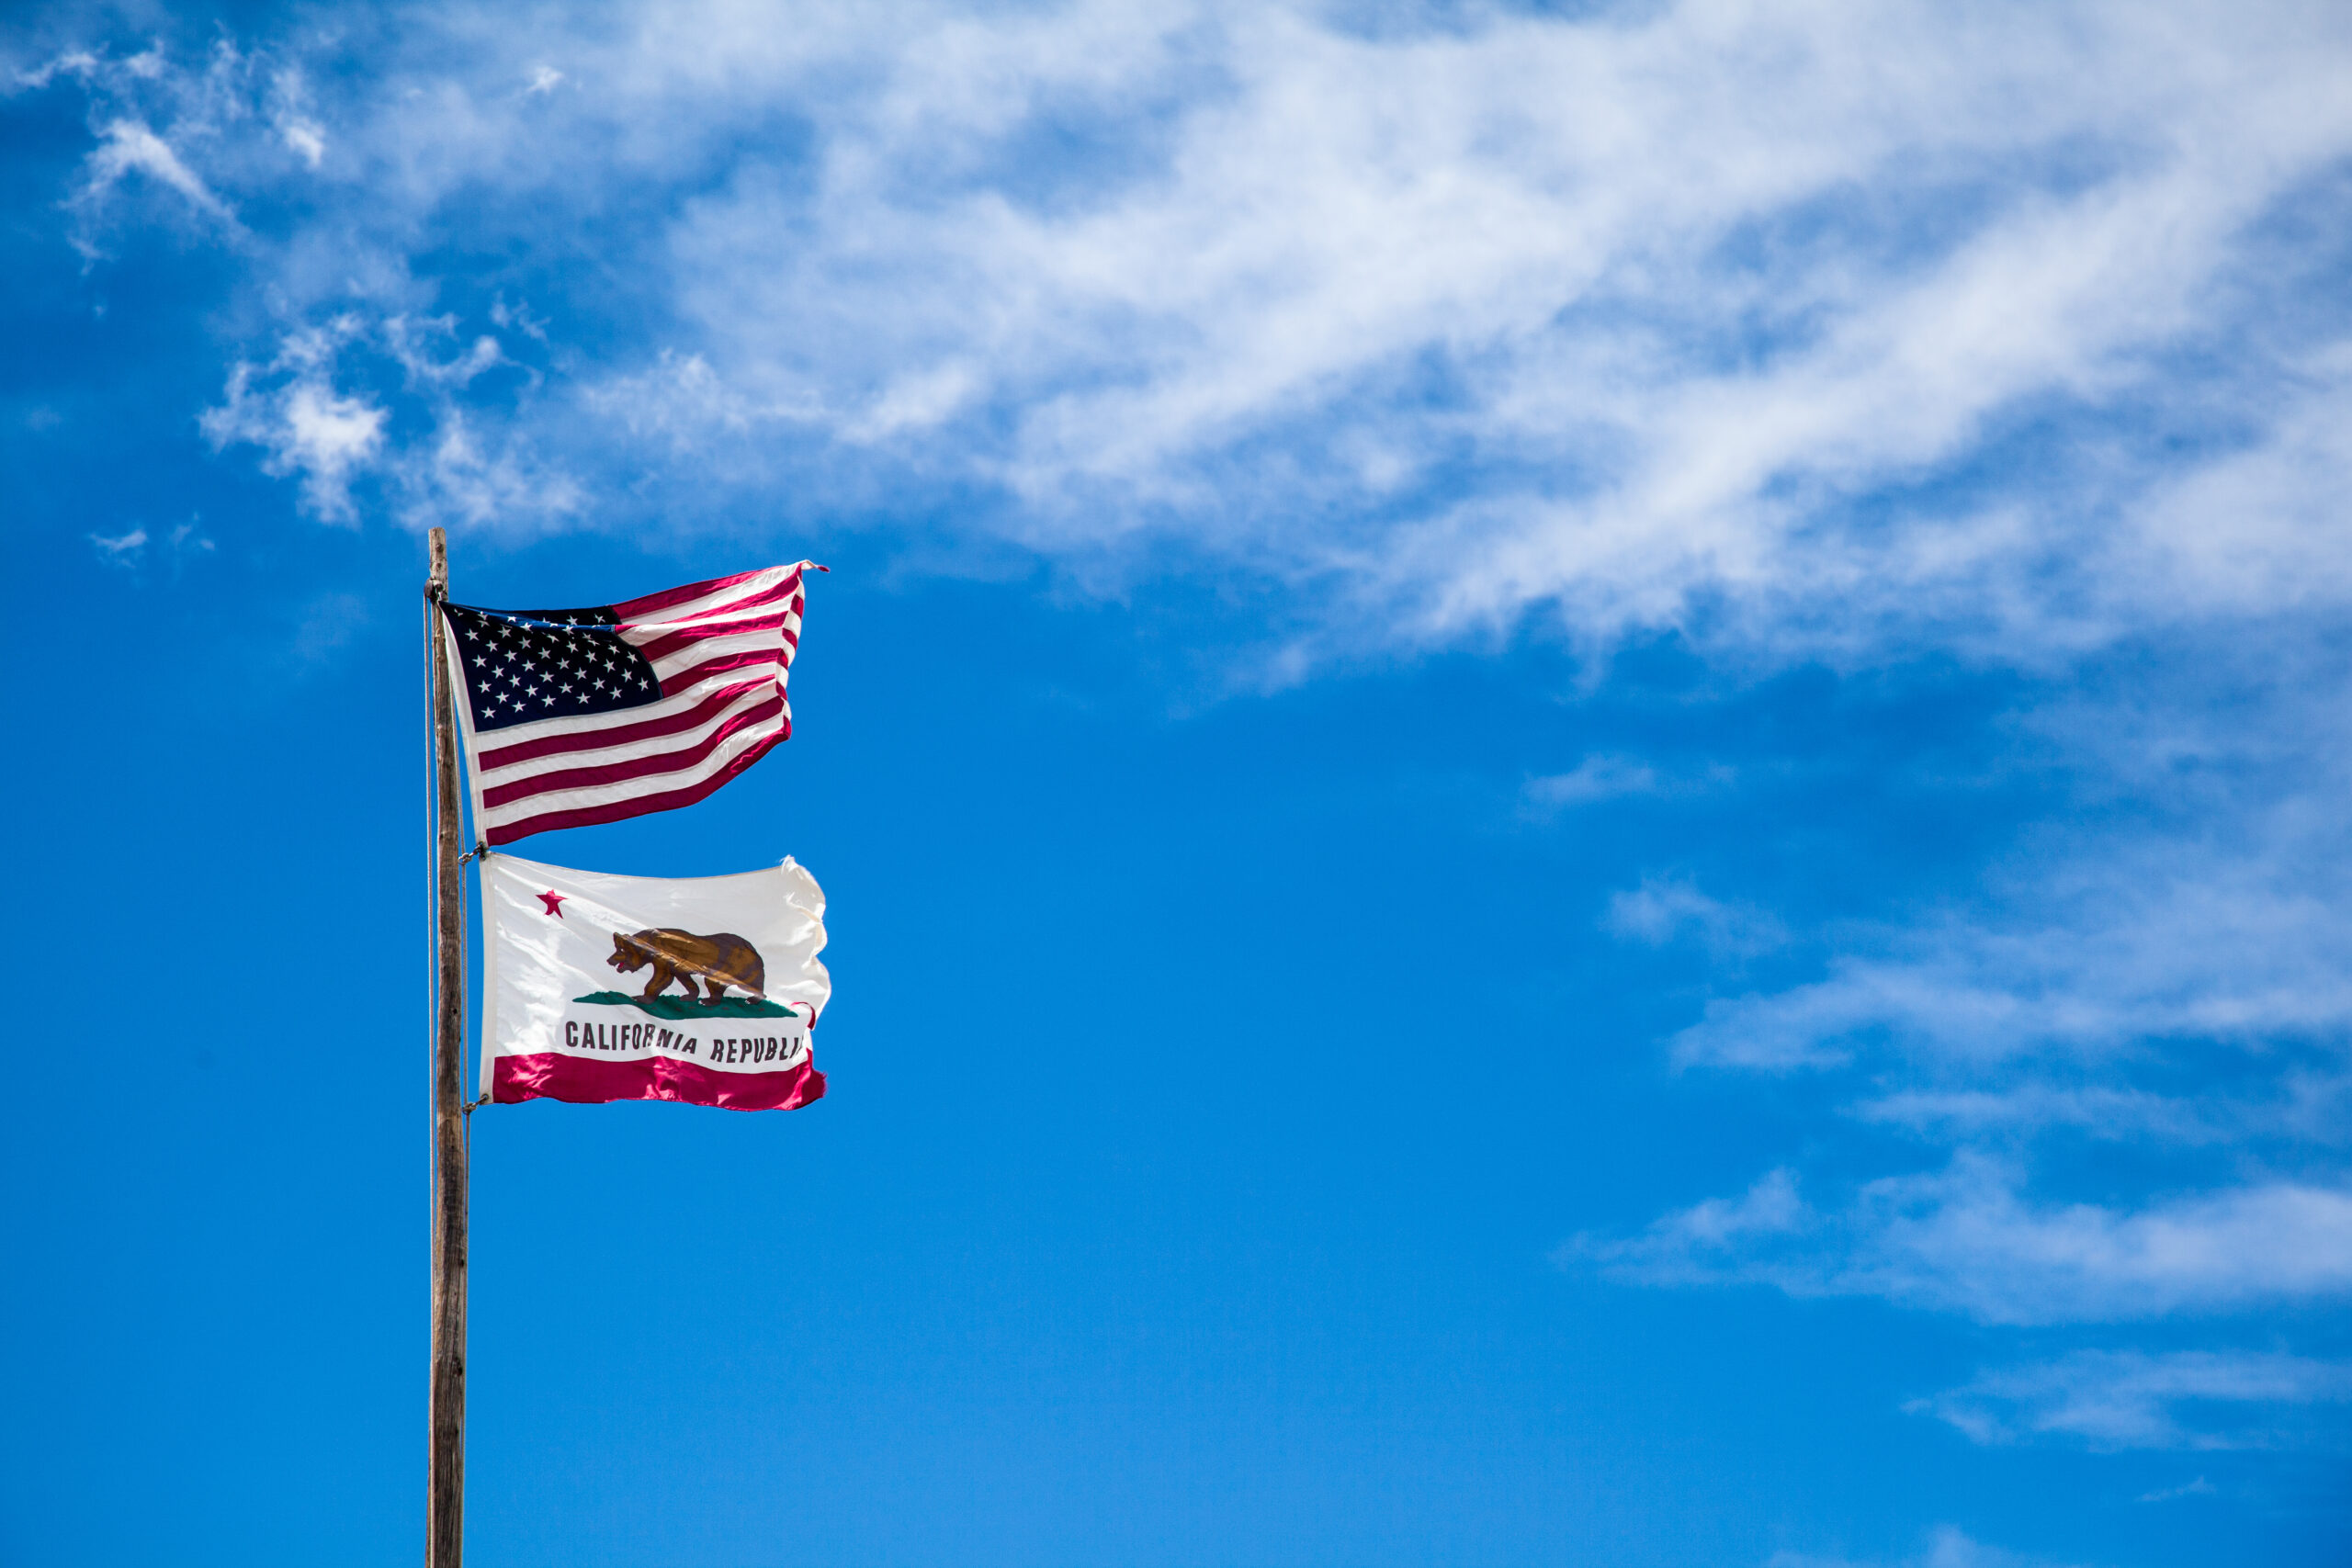 American flag and California Republic flag waving in blue sky